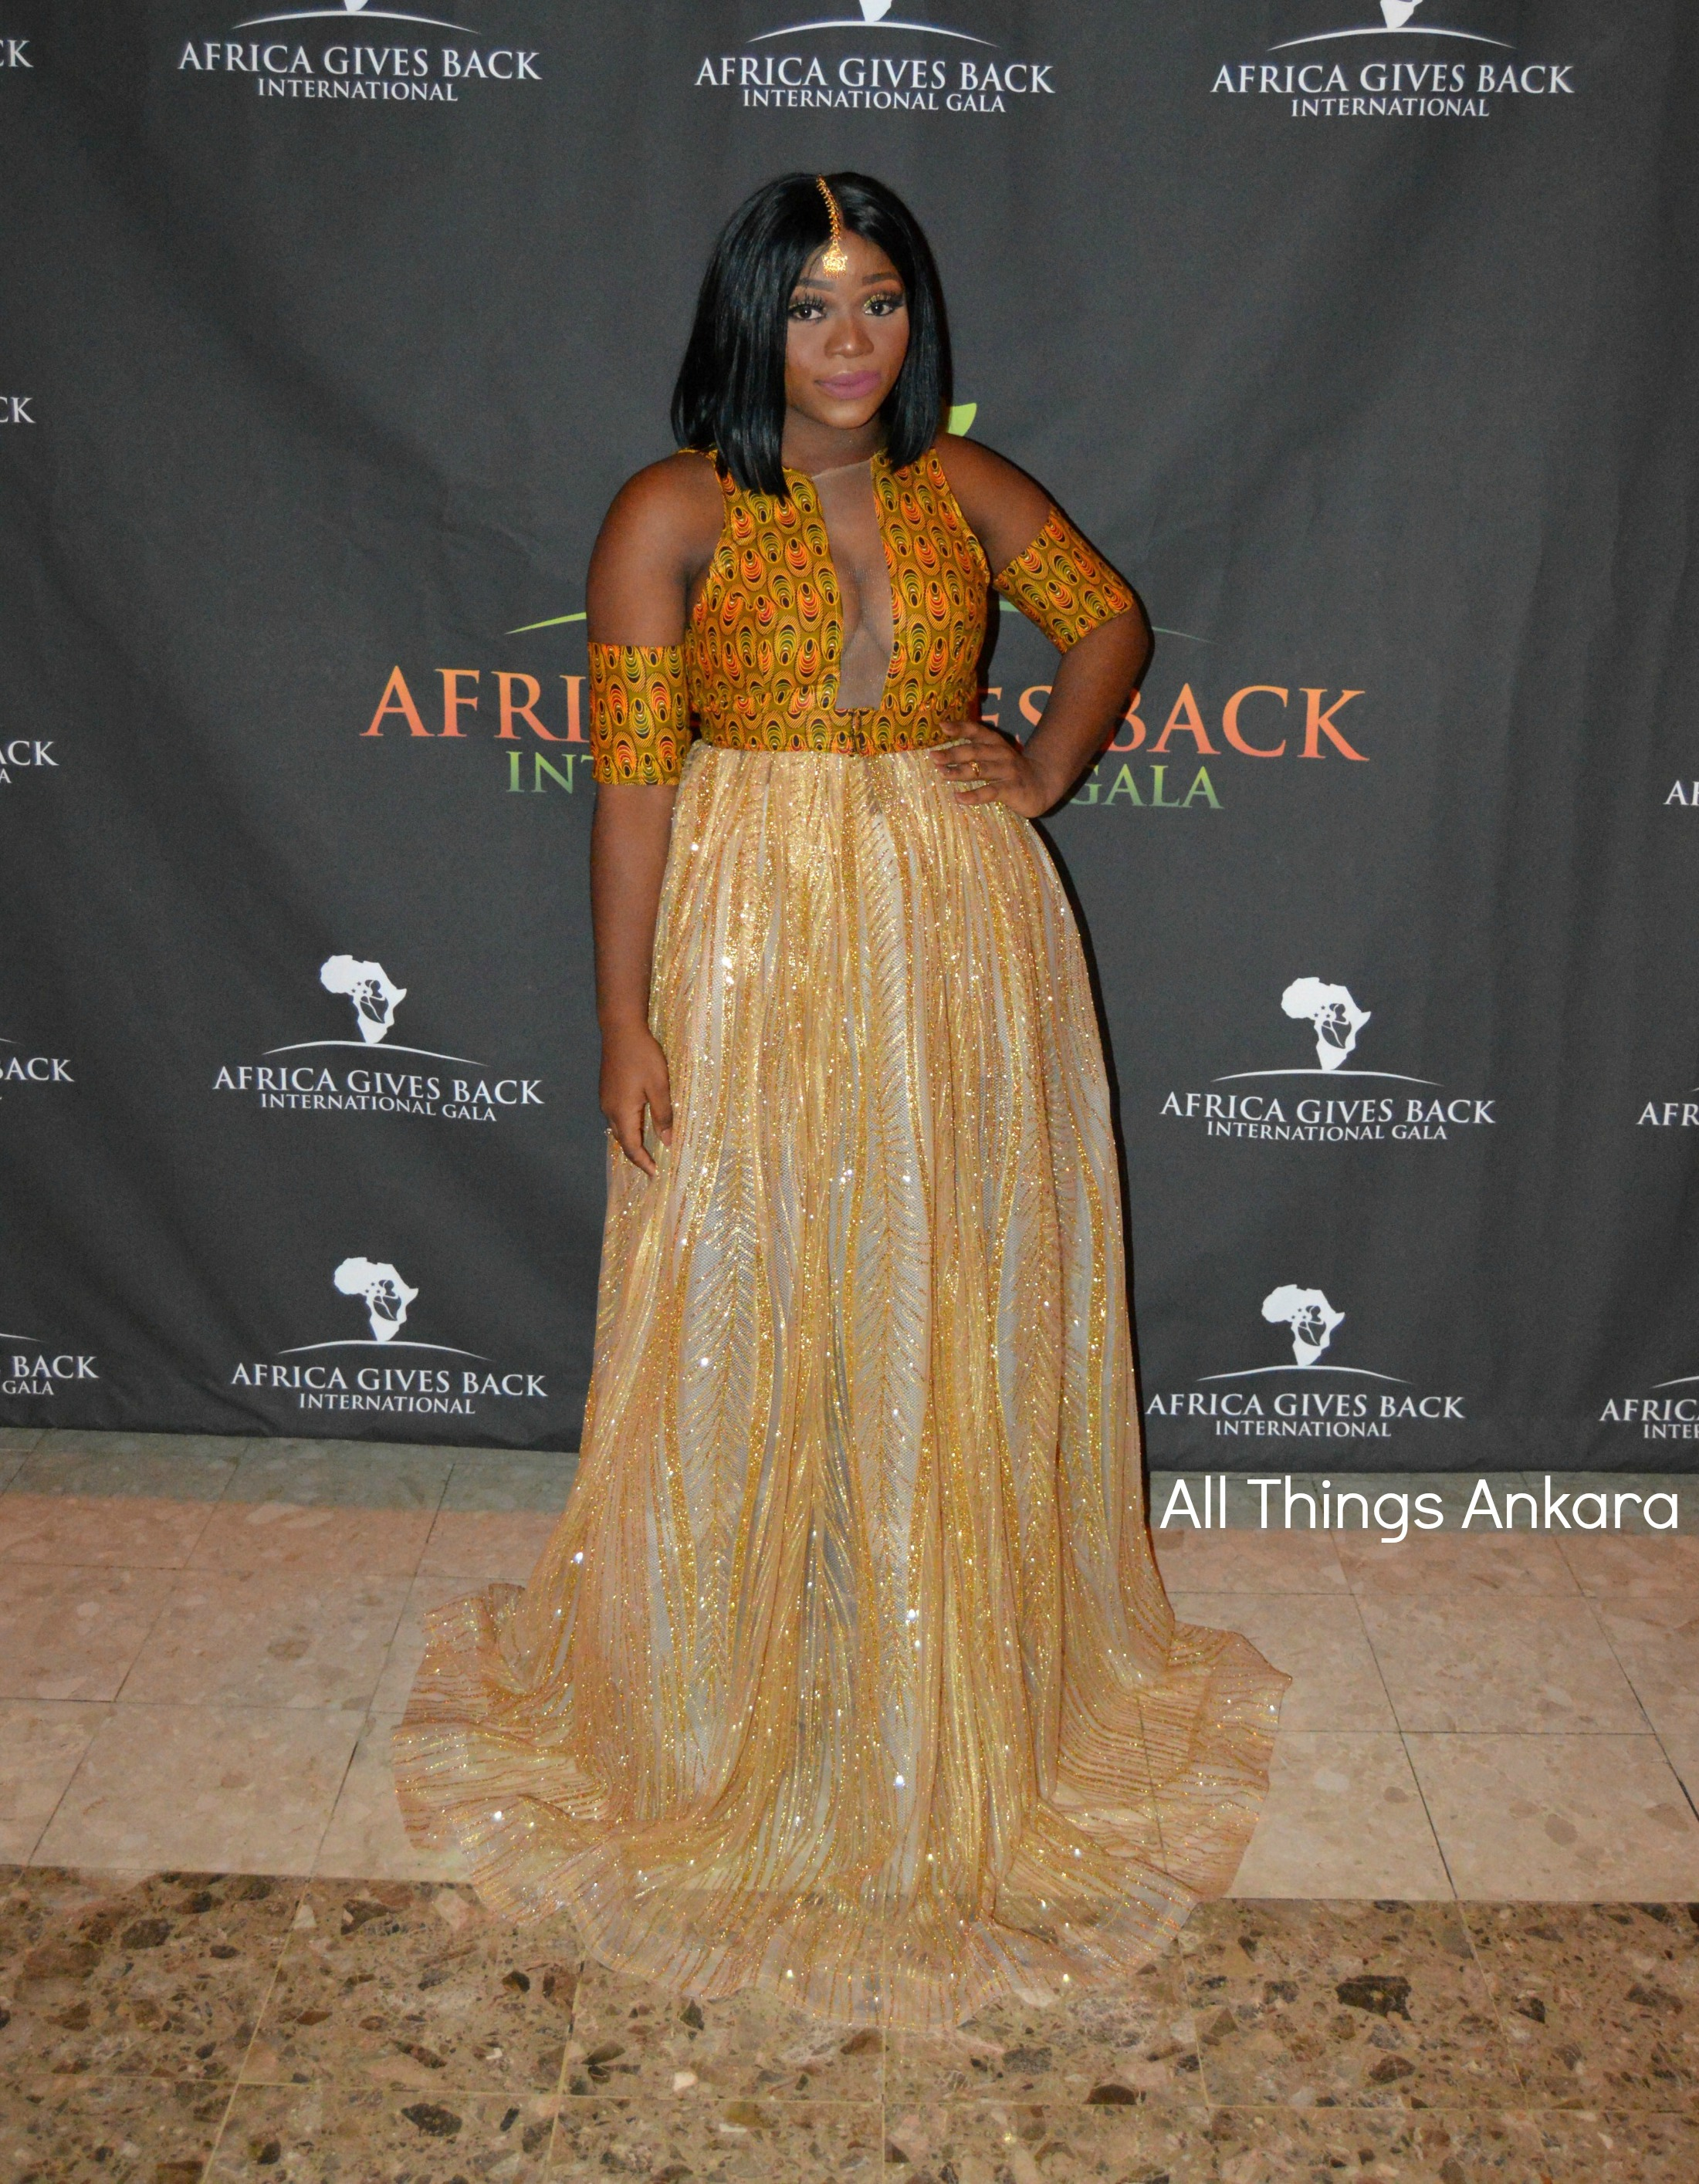 Gala-All Things Ankara's Best Dressed Women at Africa Gives Back International Gala 2016 1